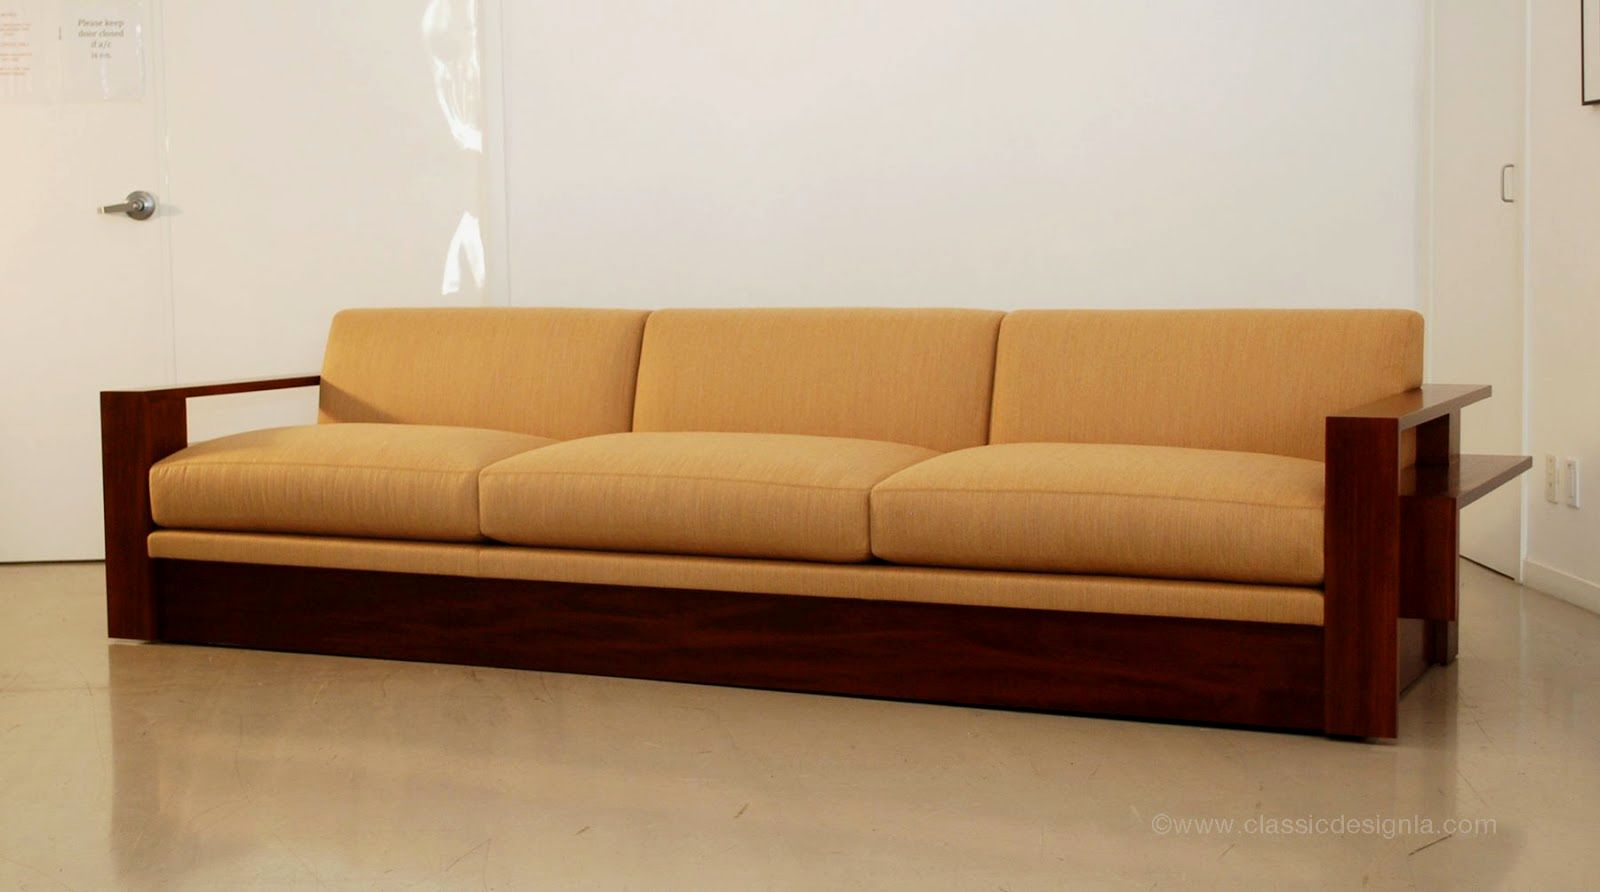 fantastic modern futon sofa plan-Superb Modern Futon sofa Picture